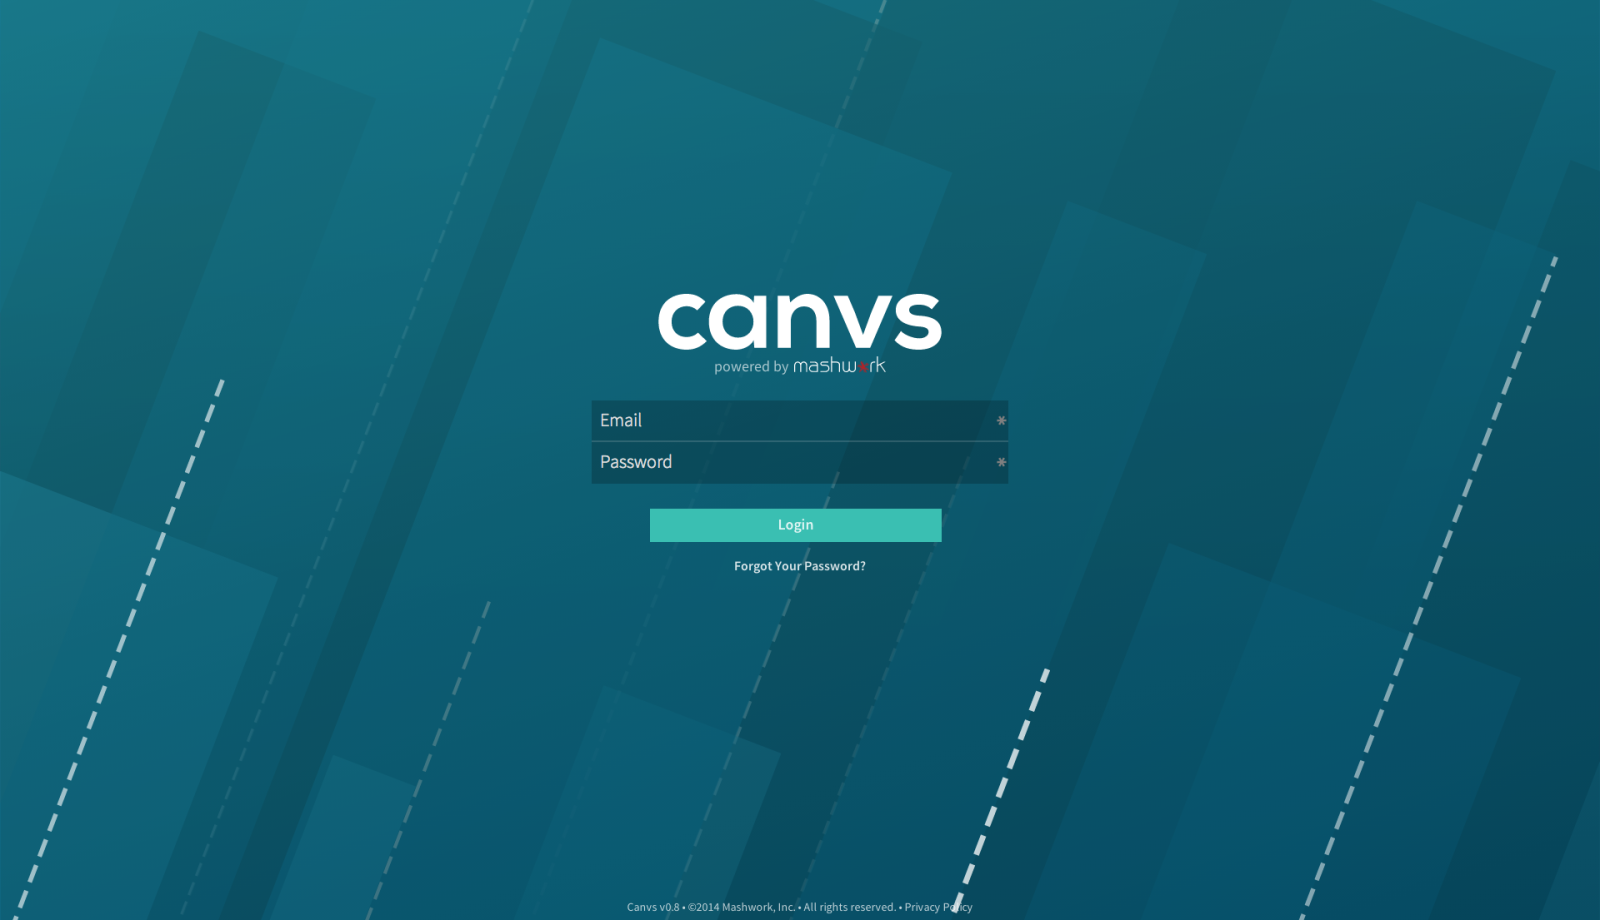 New Canvs Login Page